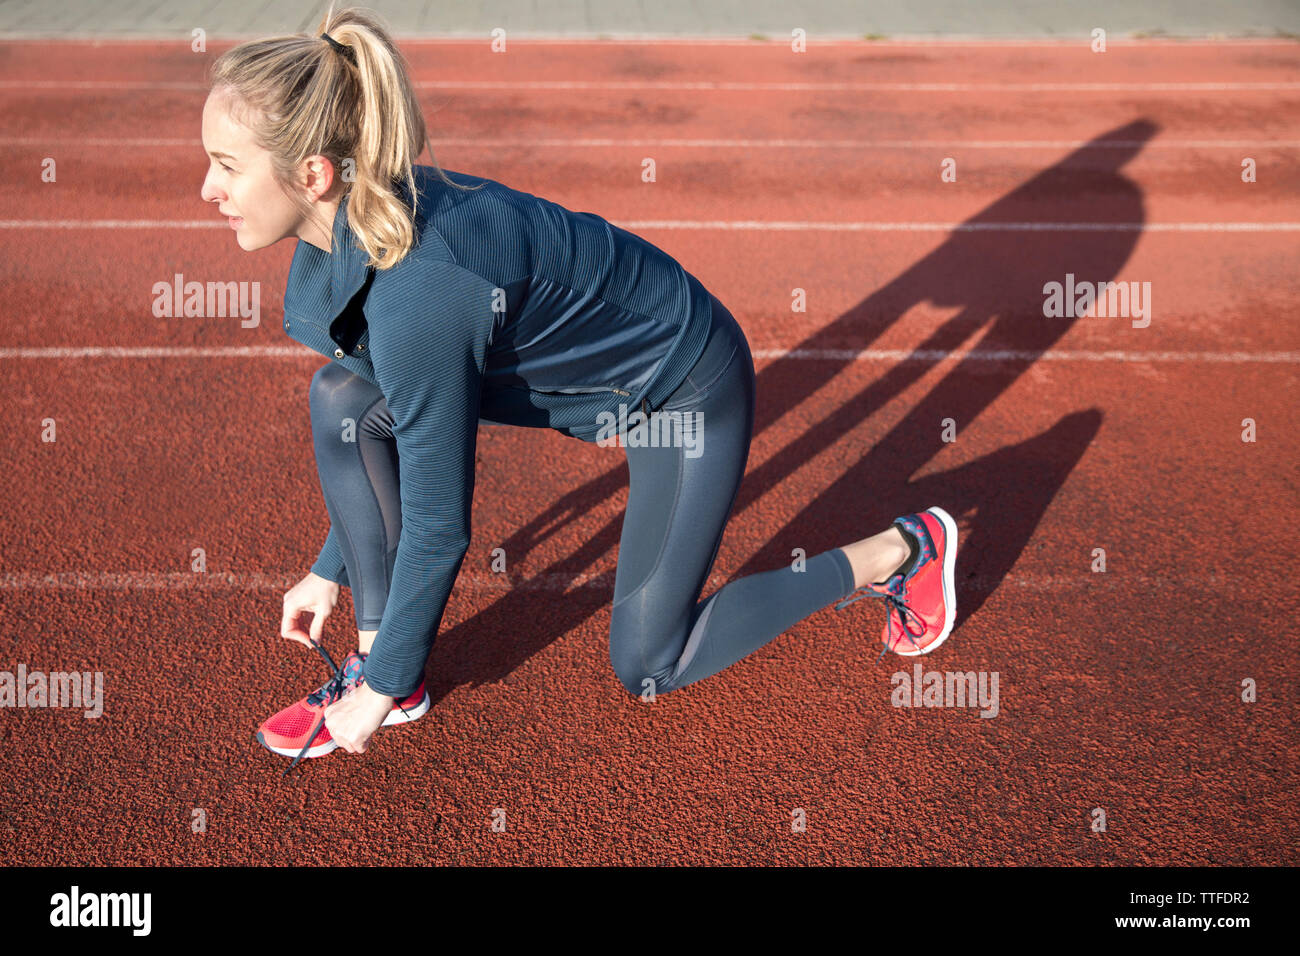 Side view of female athlete tying shoelace on sports track - Stock Image